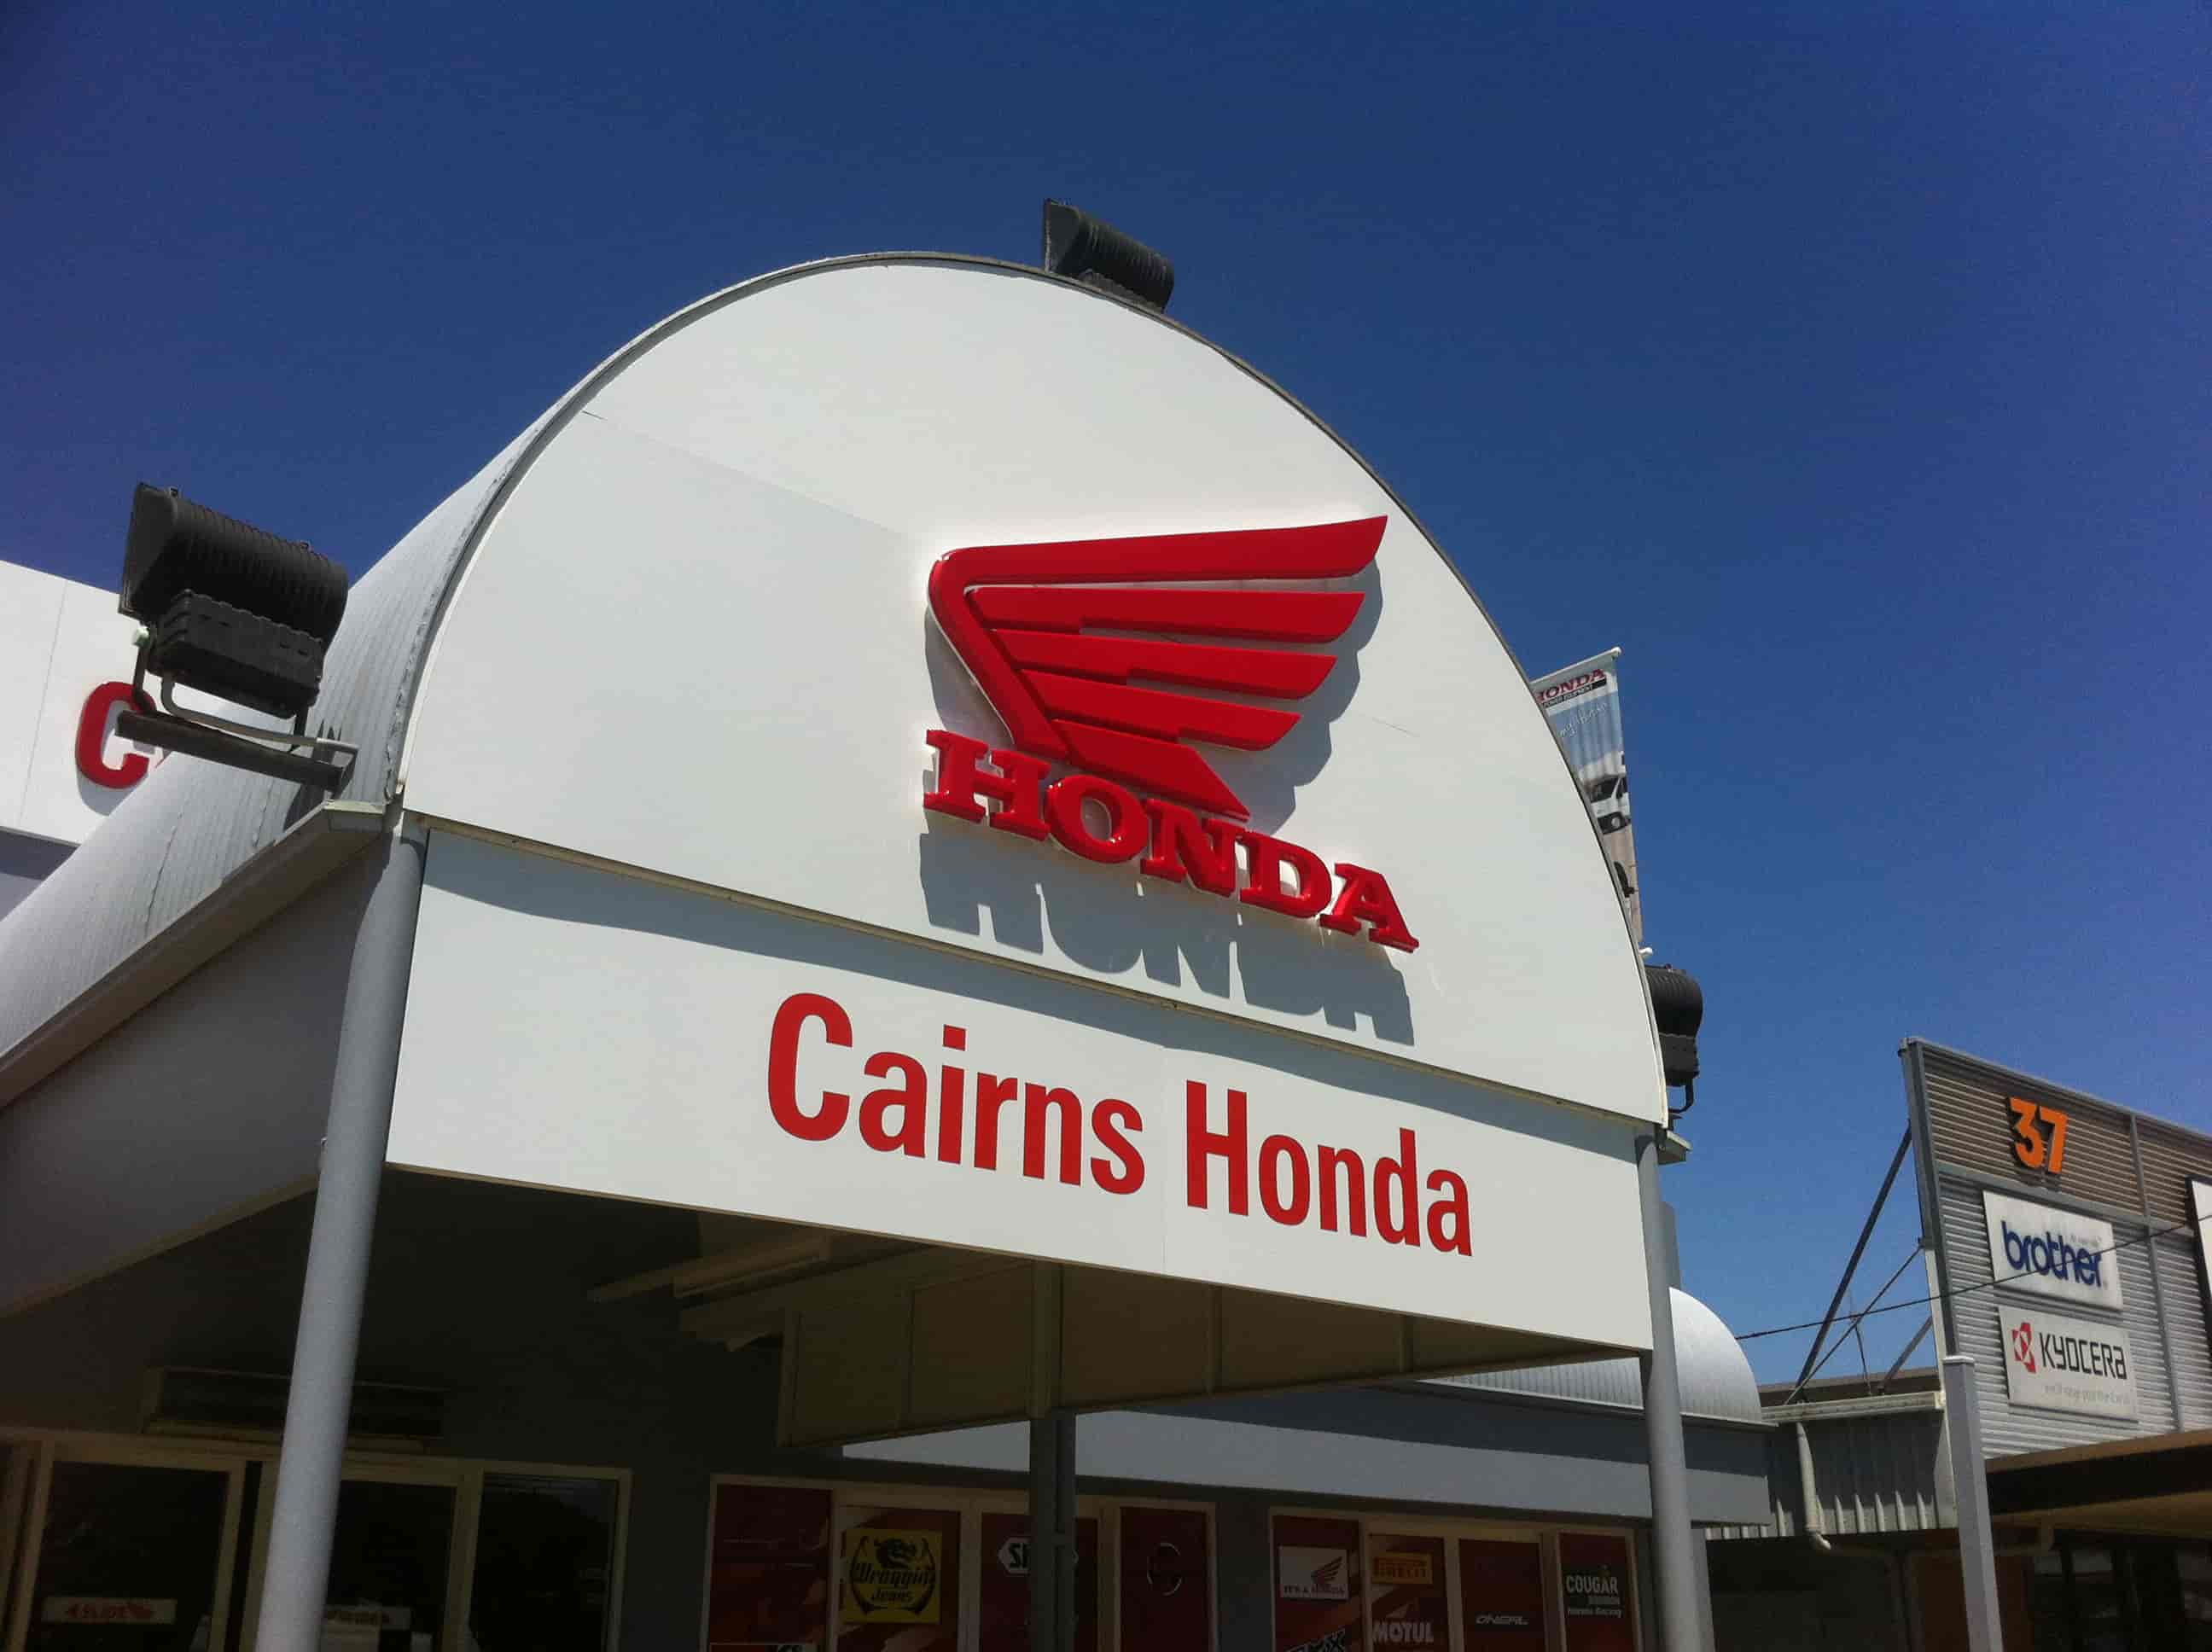 3D Fabricated Lettering honda cairns